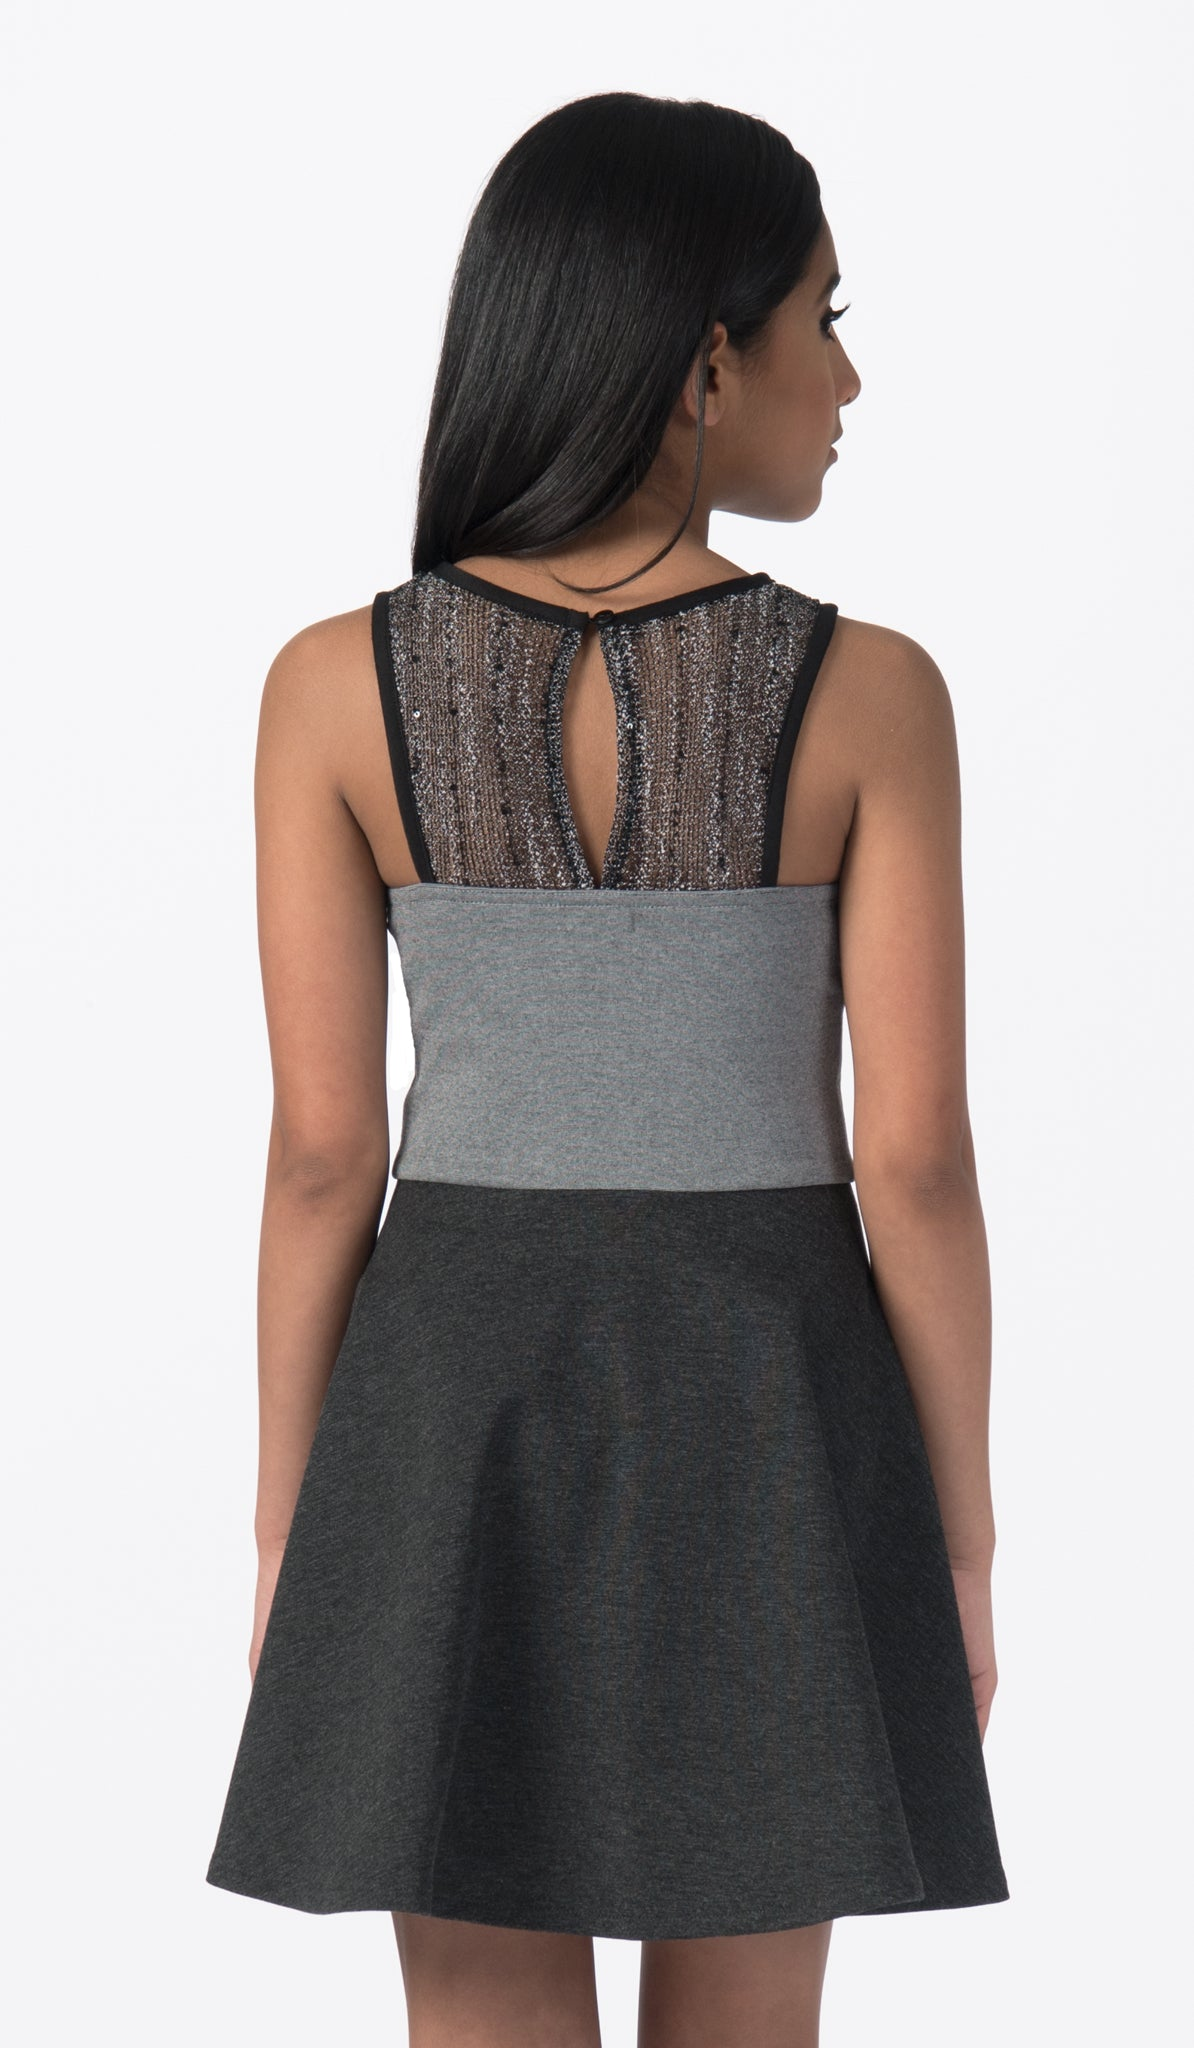 Sally Miller charcoal fit and flare special occasion dress with sequin overlay back view.